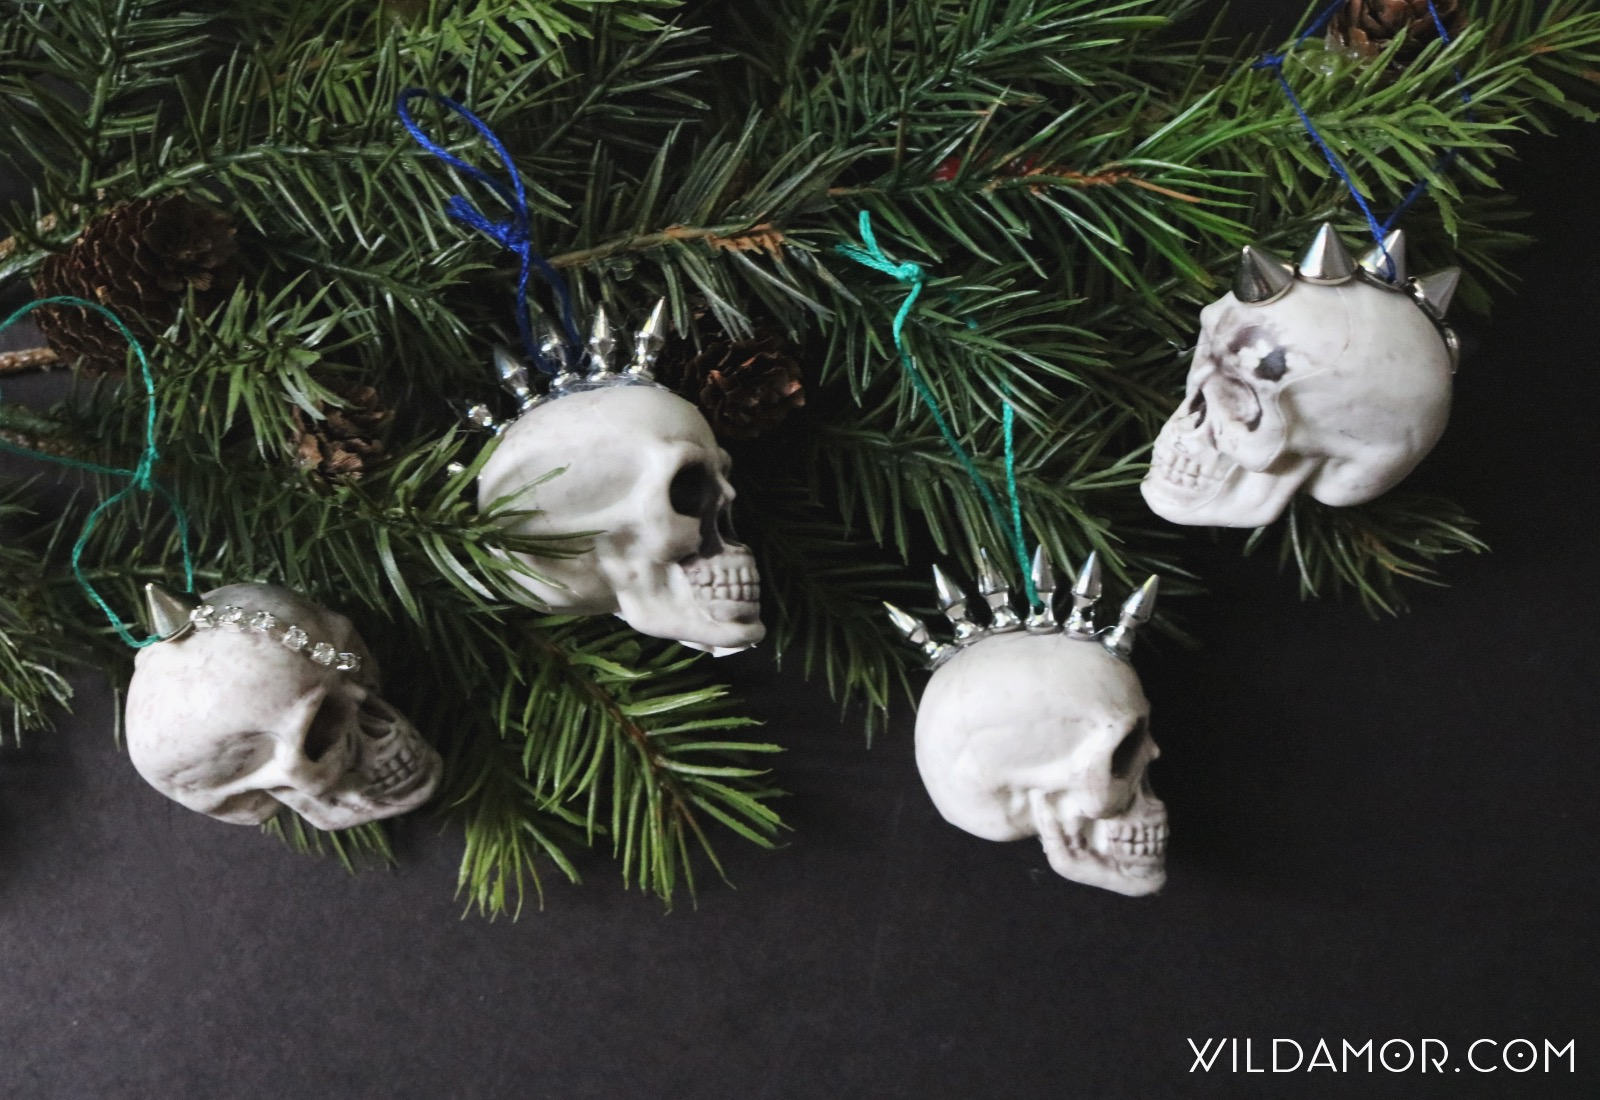 DIY Studded Mohawk Skull Ornaments